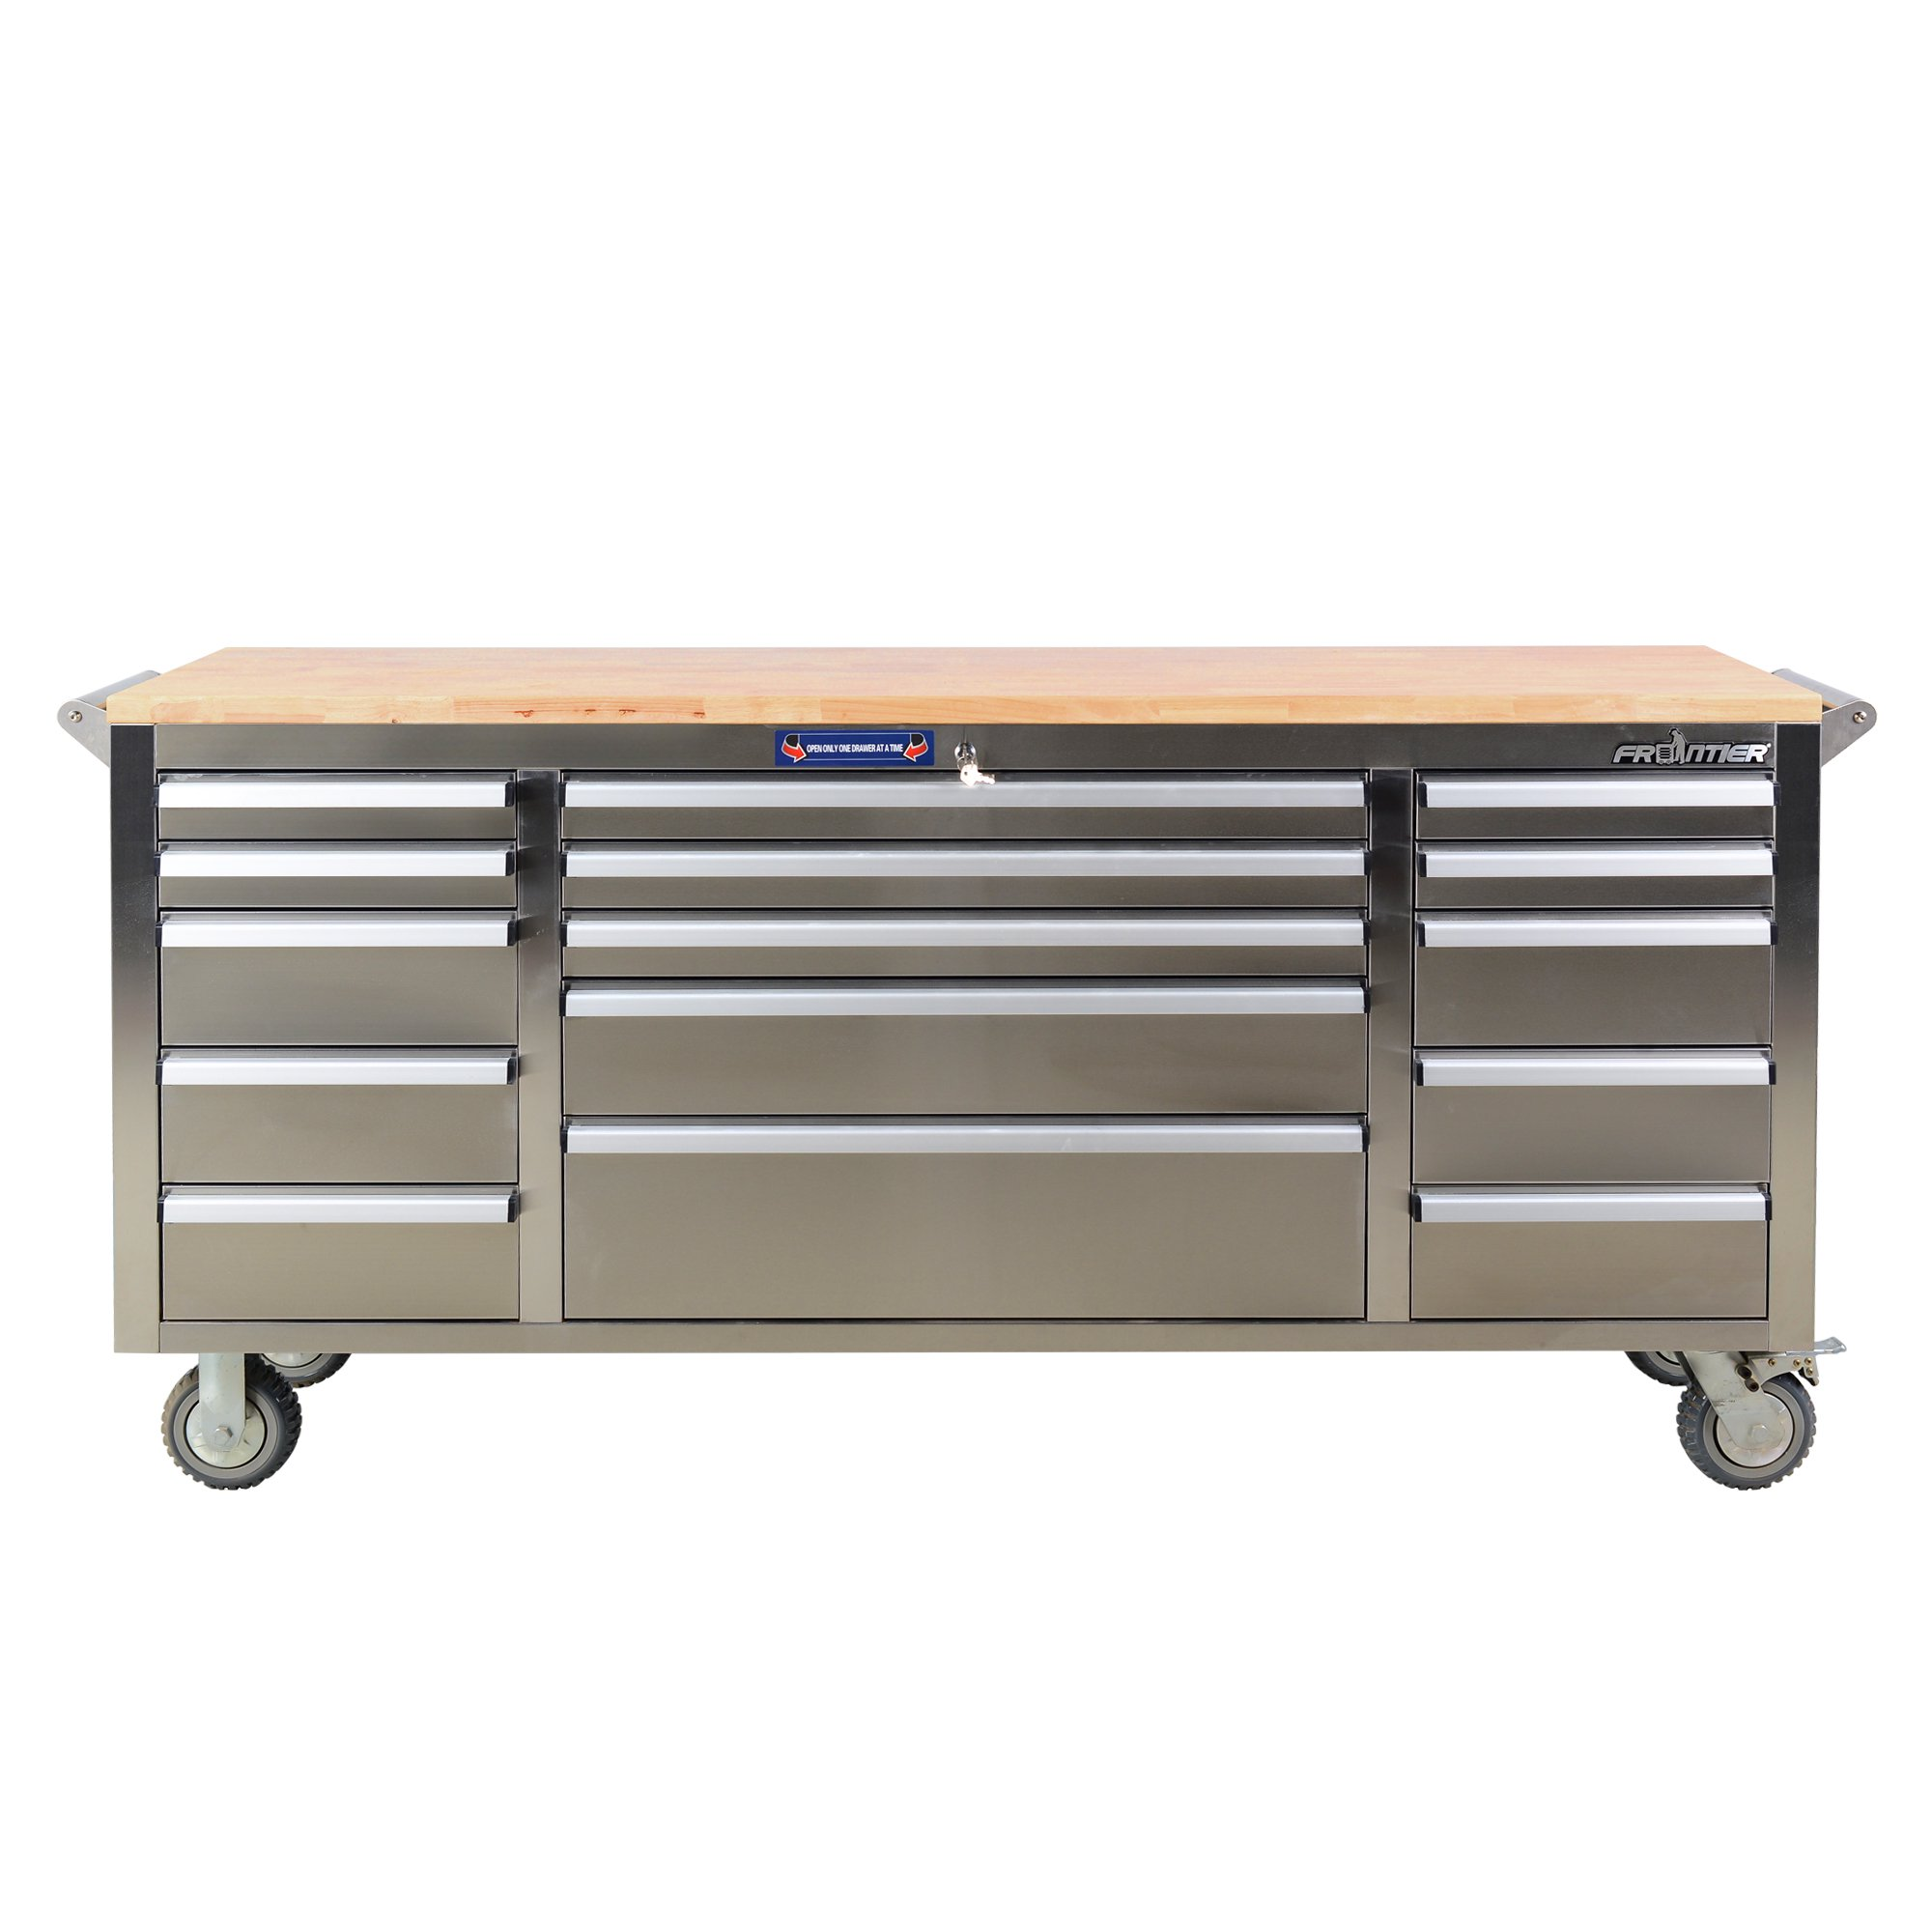 Stupendous Frontier 72 Inch Stainless Steel Utility Tool Cabinet Organizer With 15 Drawers And 1 25 Inch Thick Wooden Work Surface Spiritservingveterans Wood Chair Design Ideas Spiritservingveteransorg